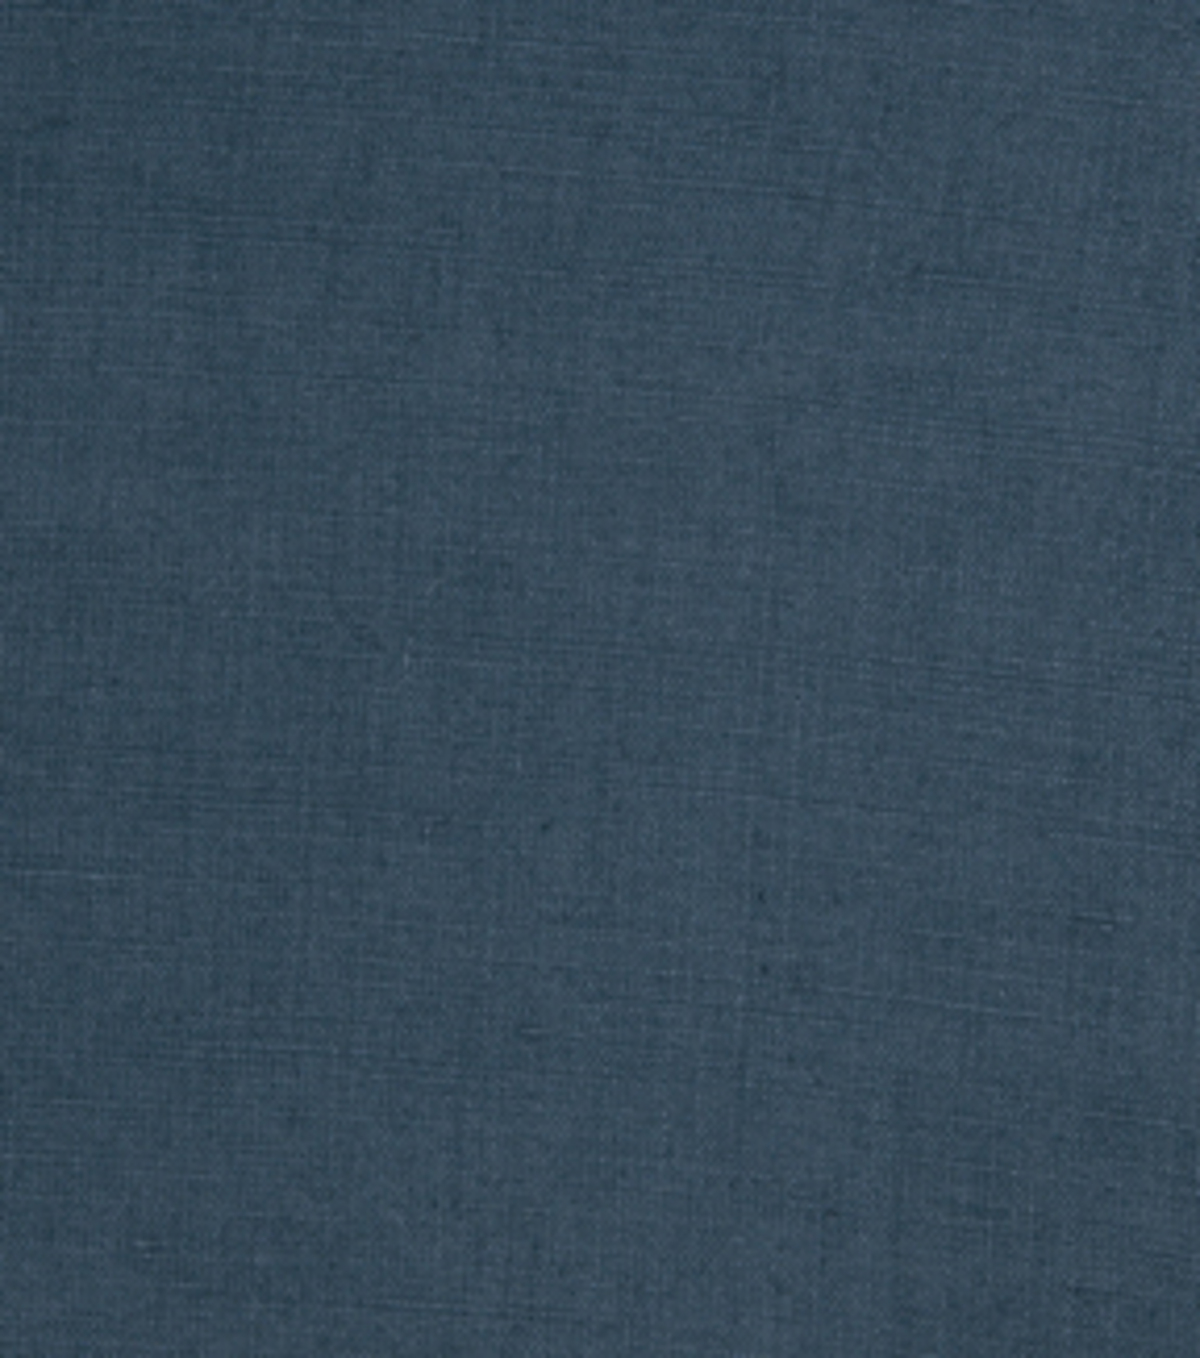 Home Decor 8\u0022x8\u0022 Fabric Swatch-Signature Series Sigourney Aegean